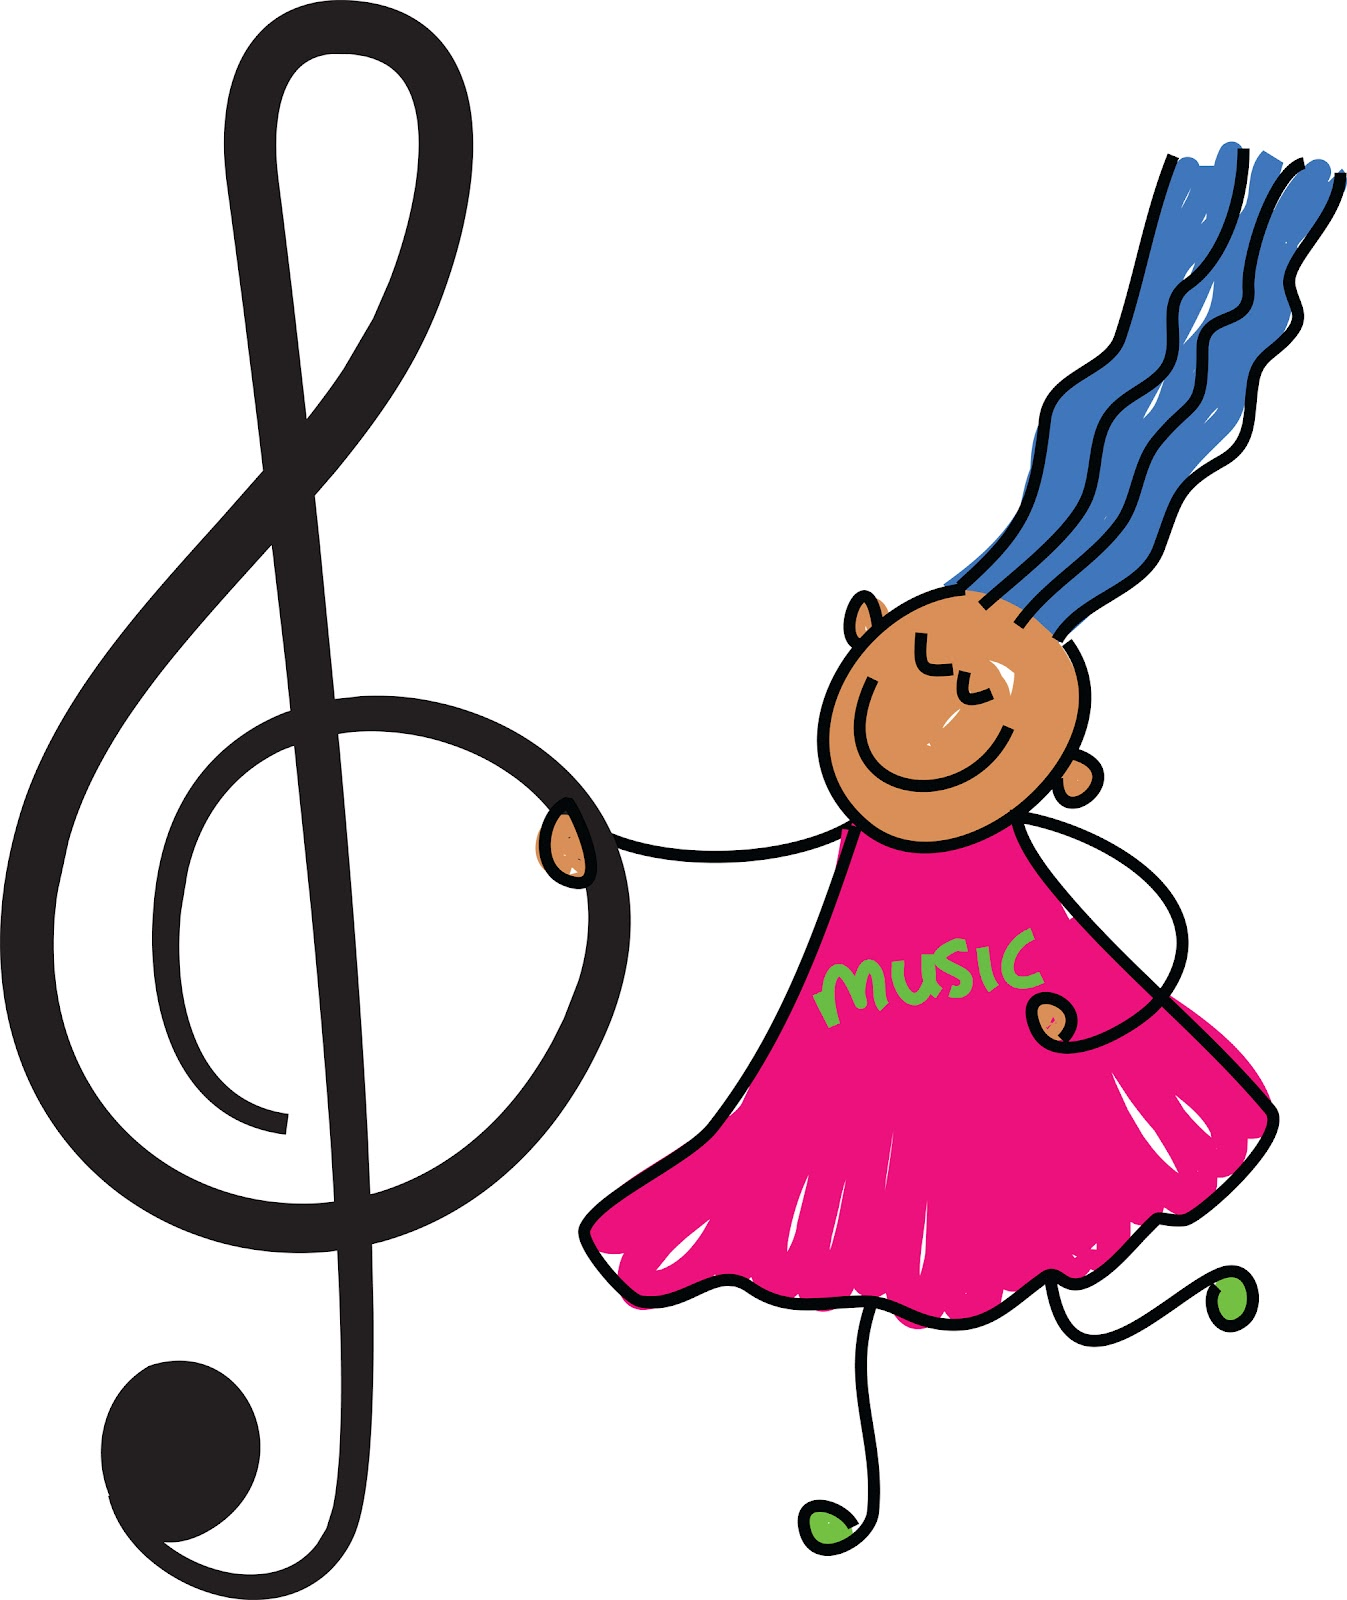 Music teacher clip art